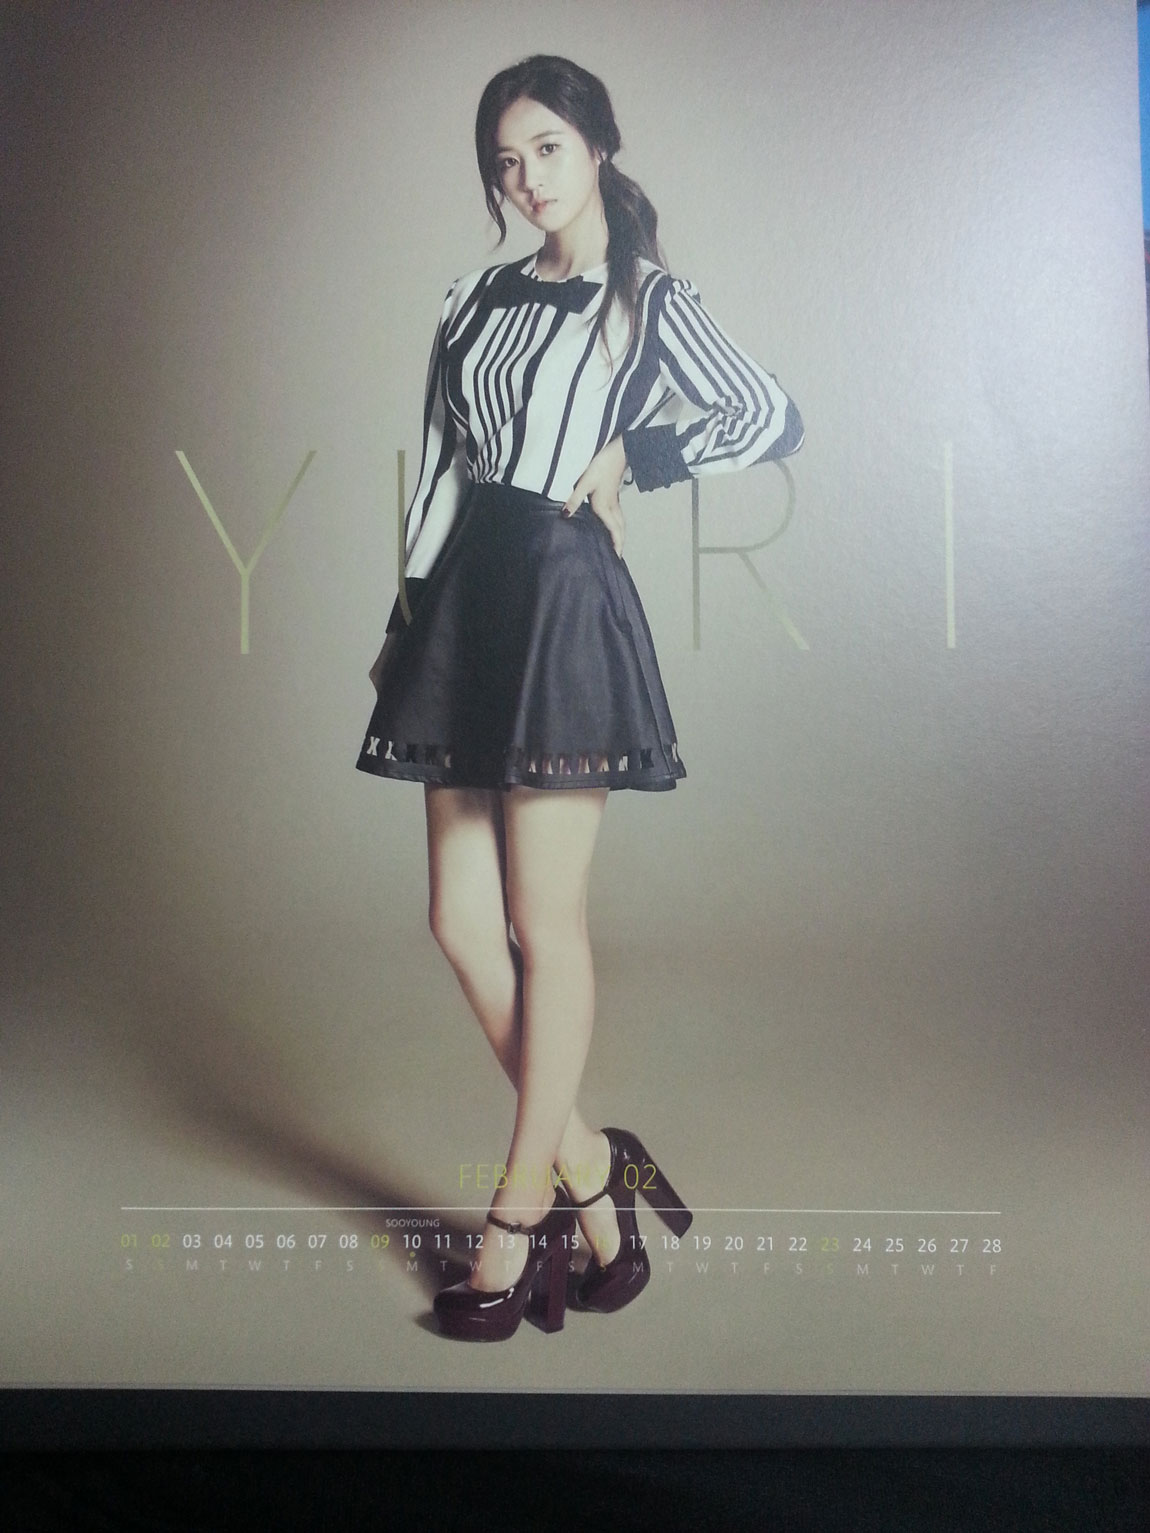 Girls Generation February 2014 calendar